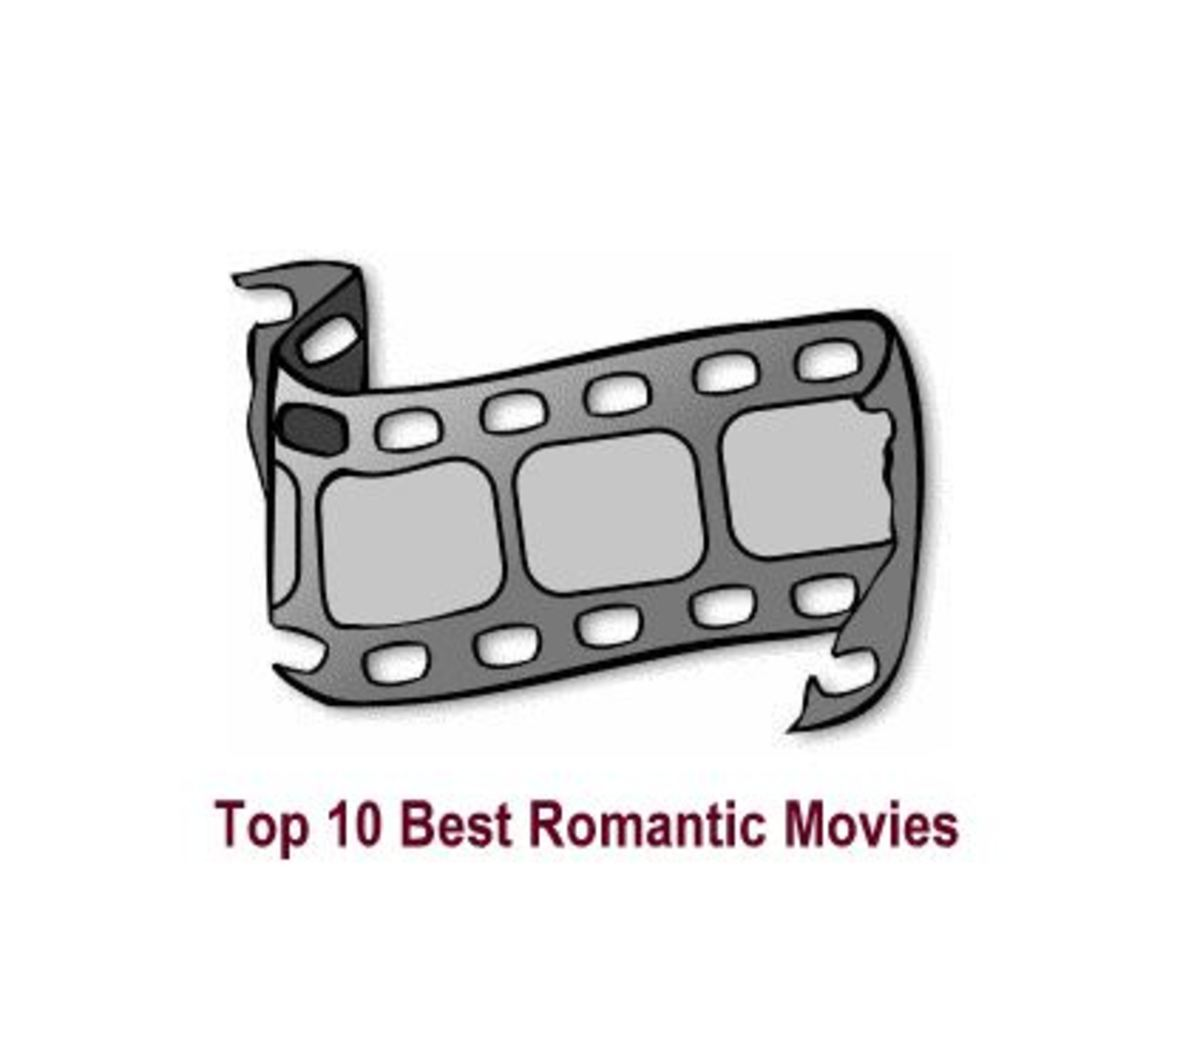 Best Romantic Movies to watch on a Date